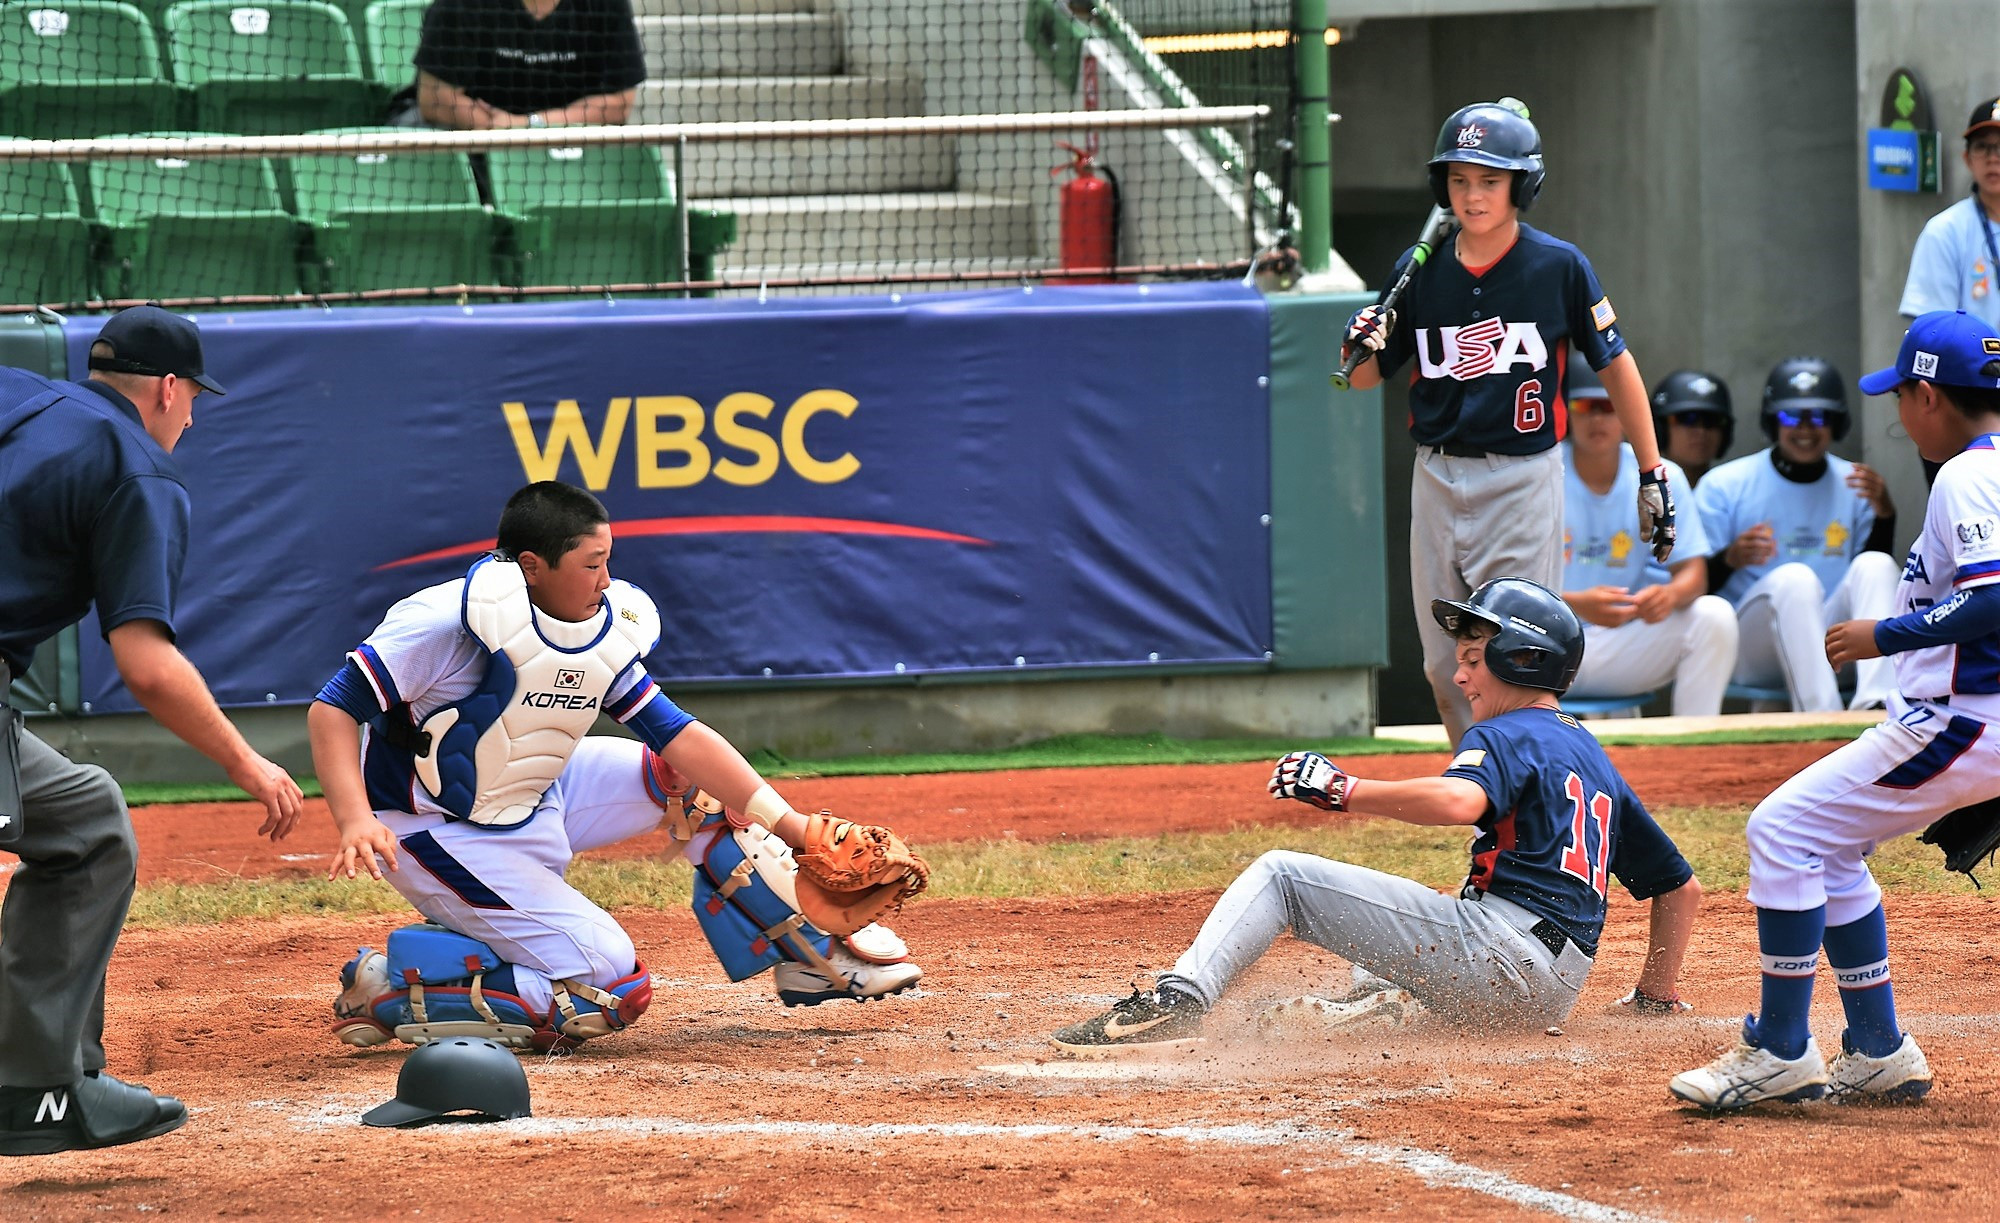 The US battled hard to claim victory ©WBSC